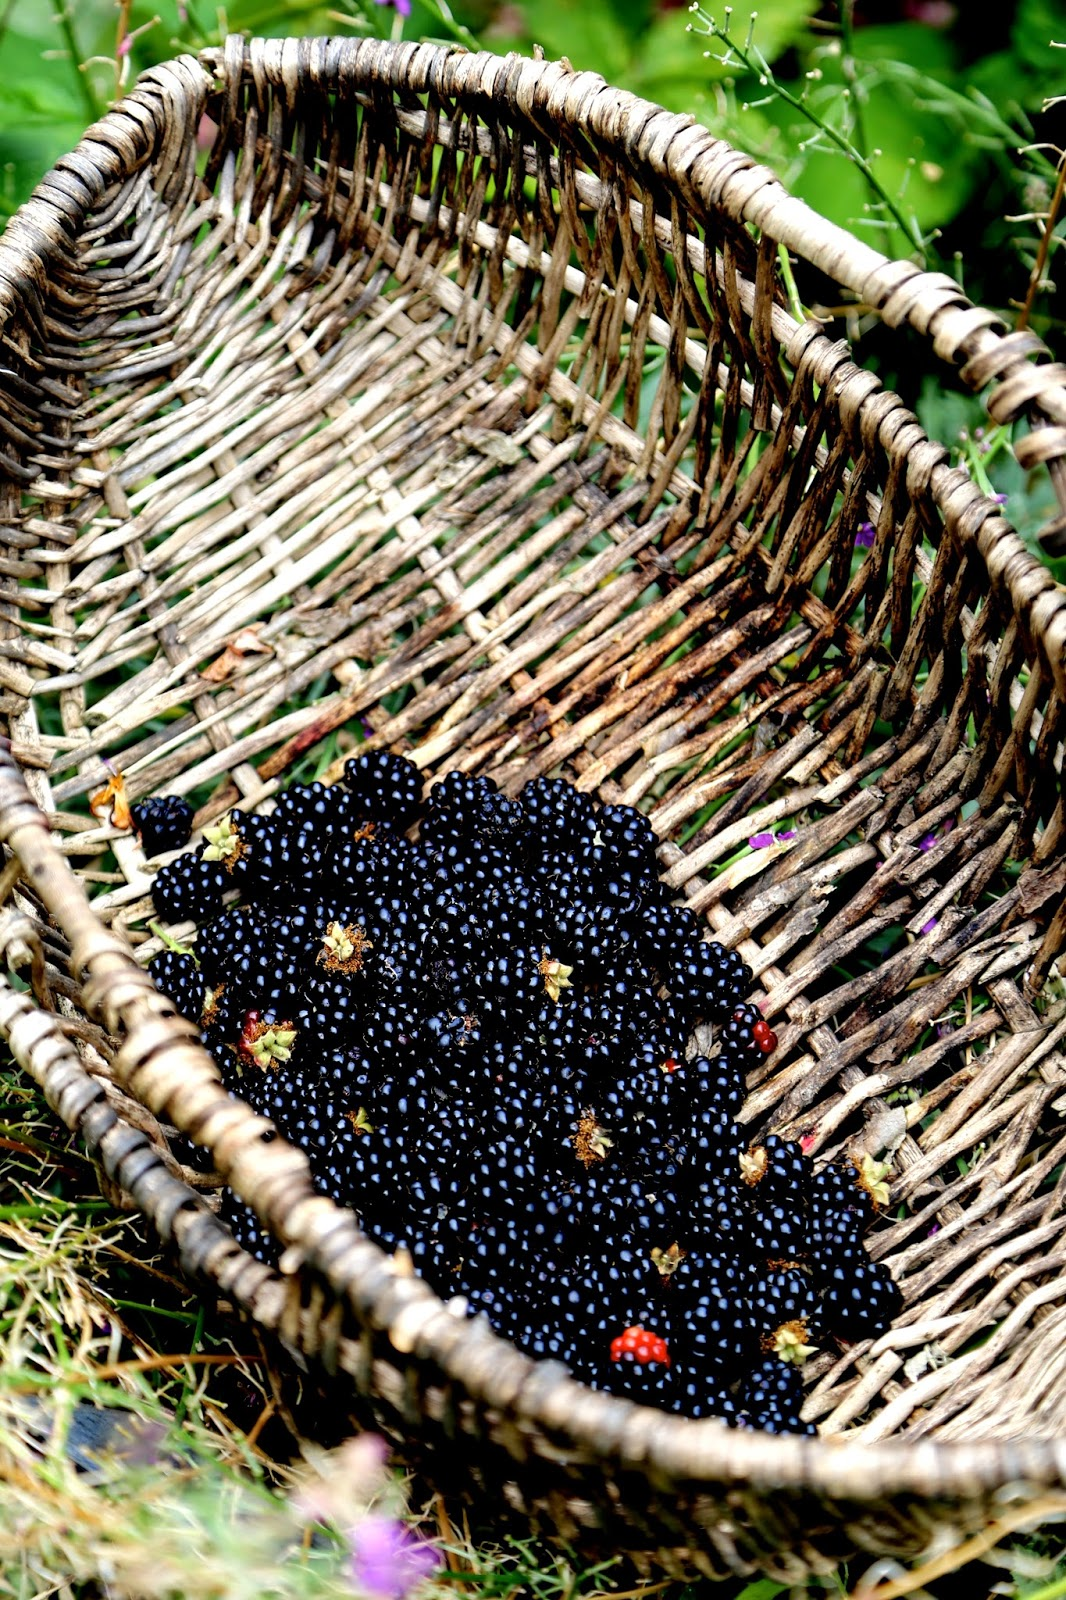 blackberries just picked in a basket